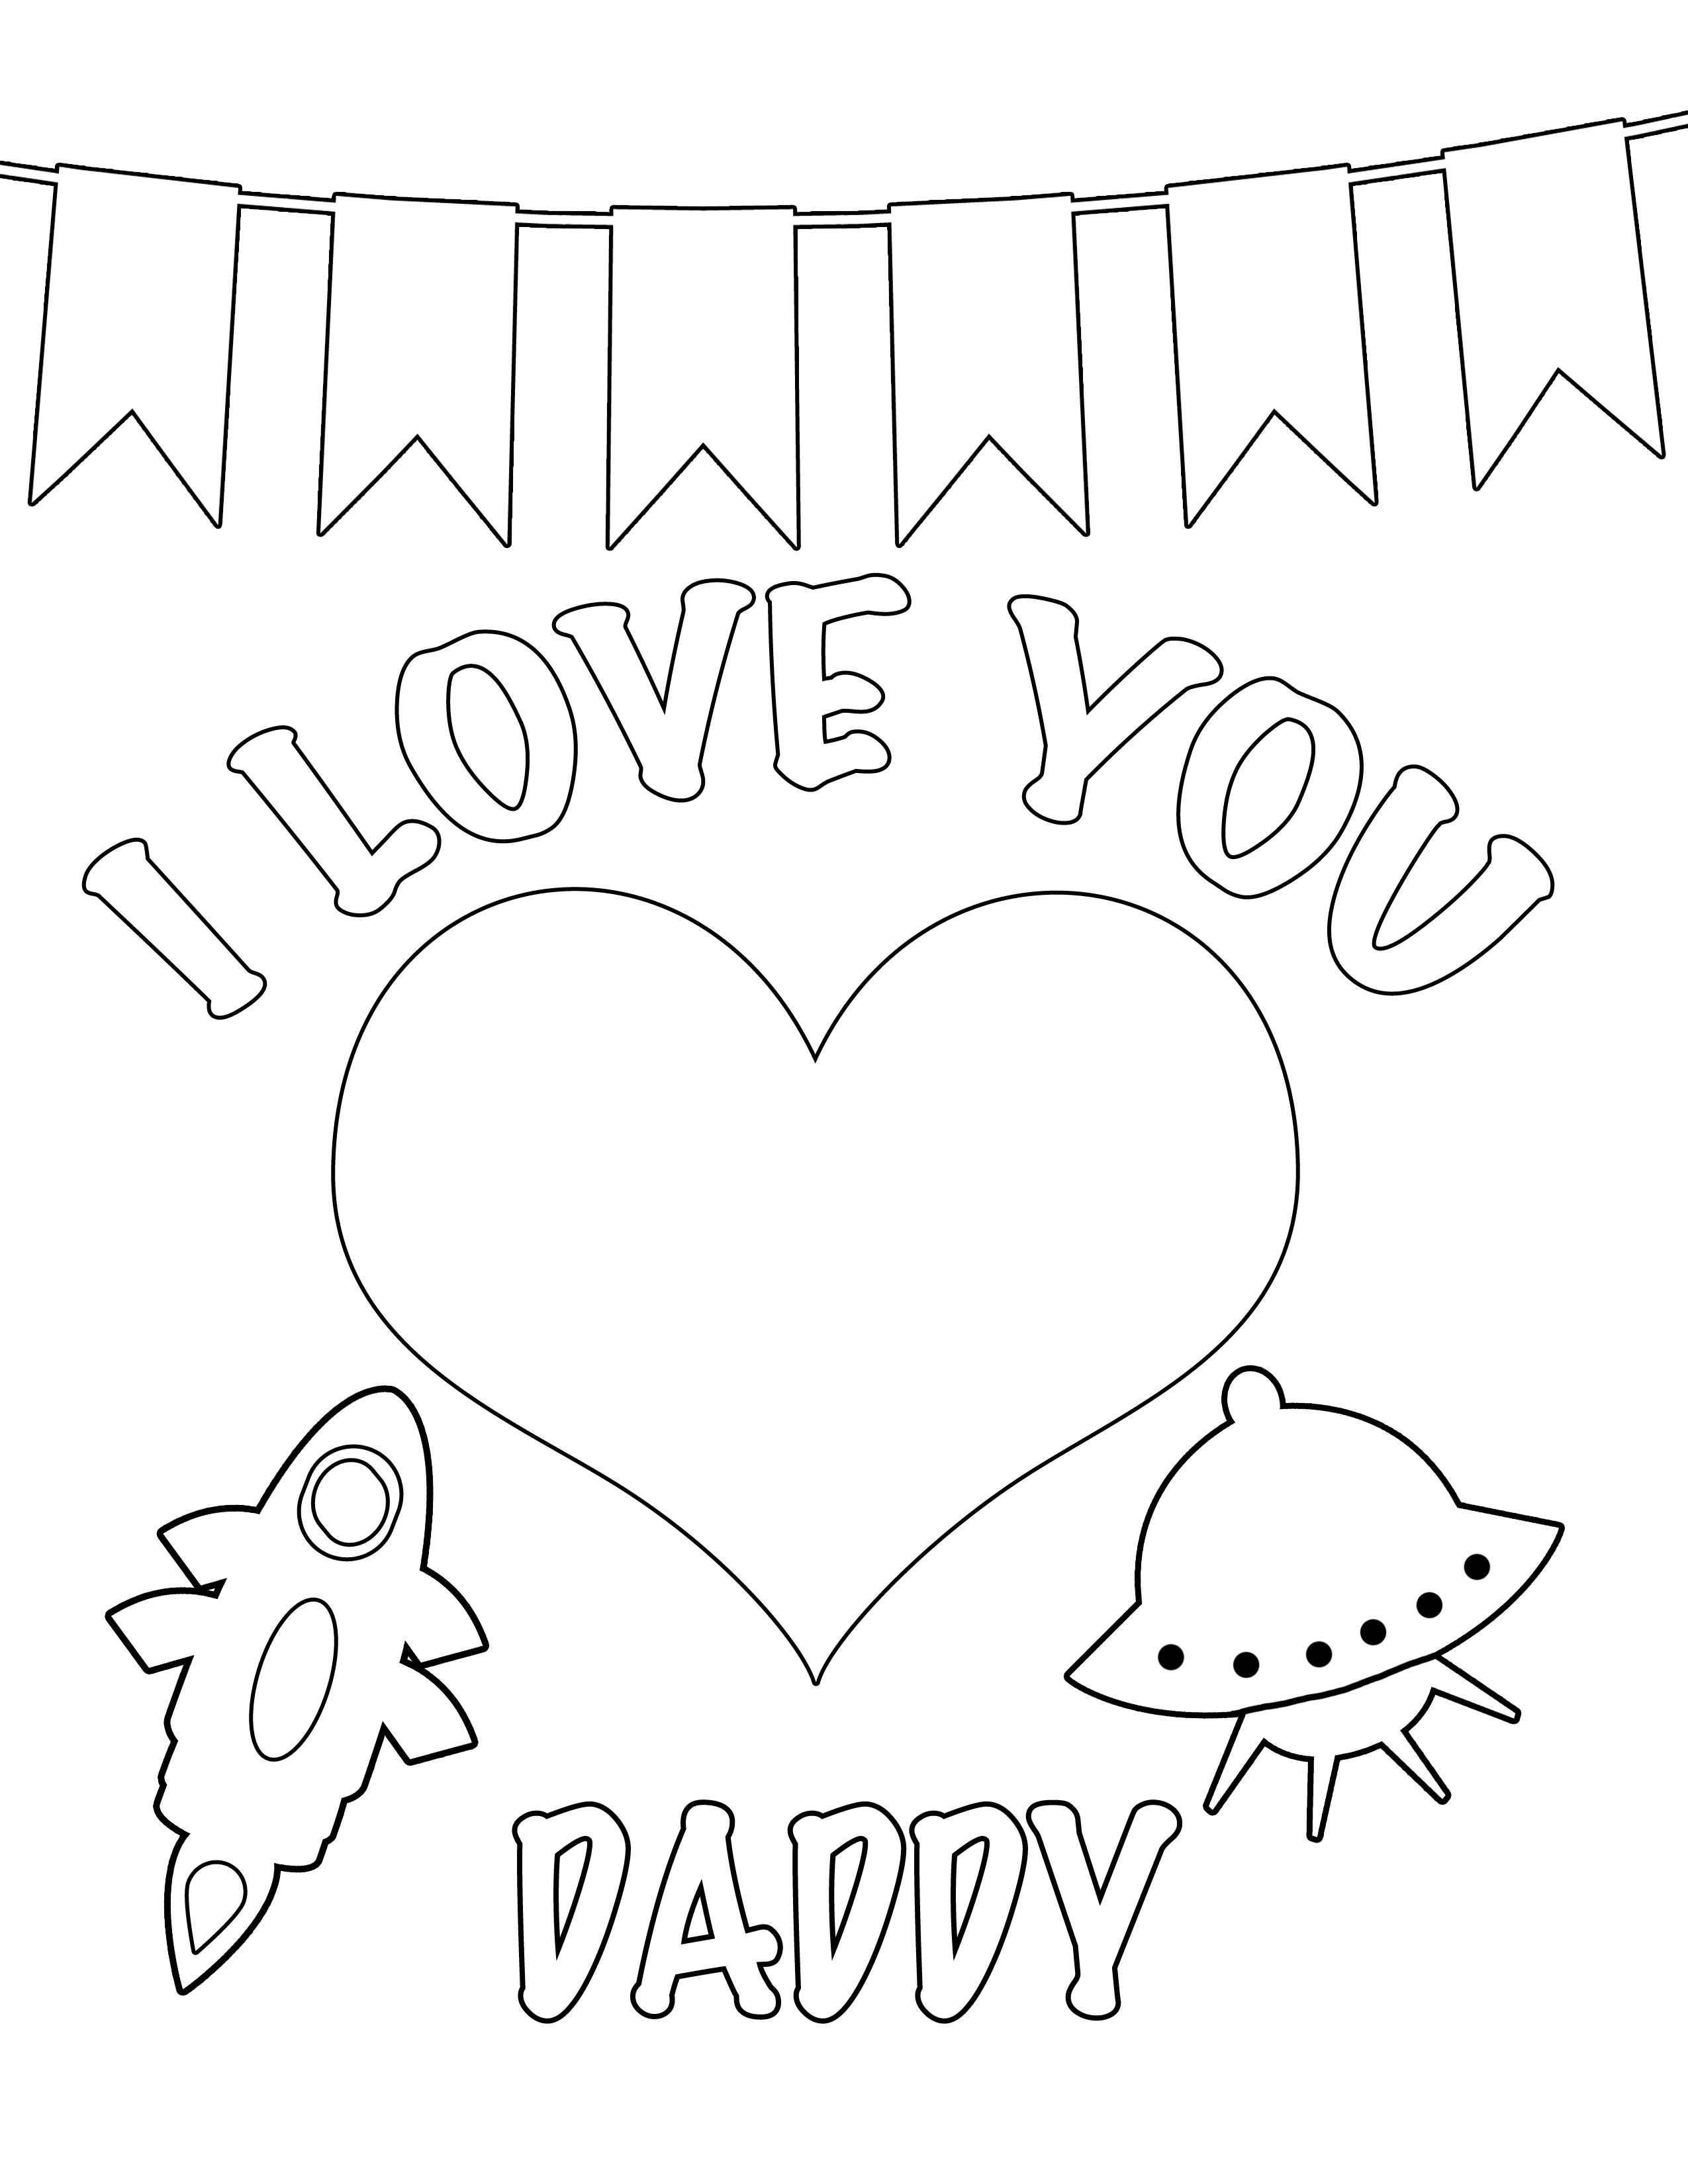 Printable Valentine S Day Coloring Pages In 2020 Fathers Day Coloring Page Valentine Coloring Pages Valentines Day Coloring Page